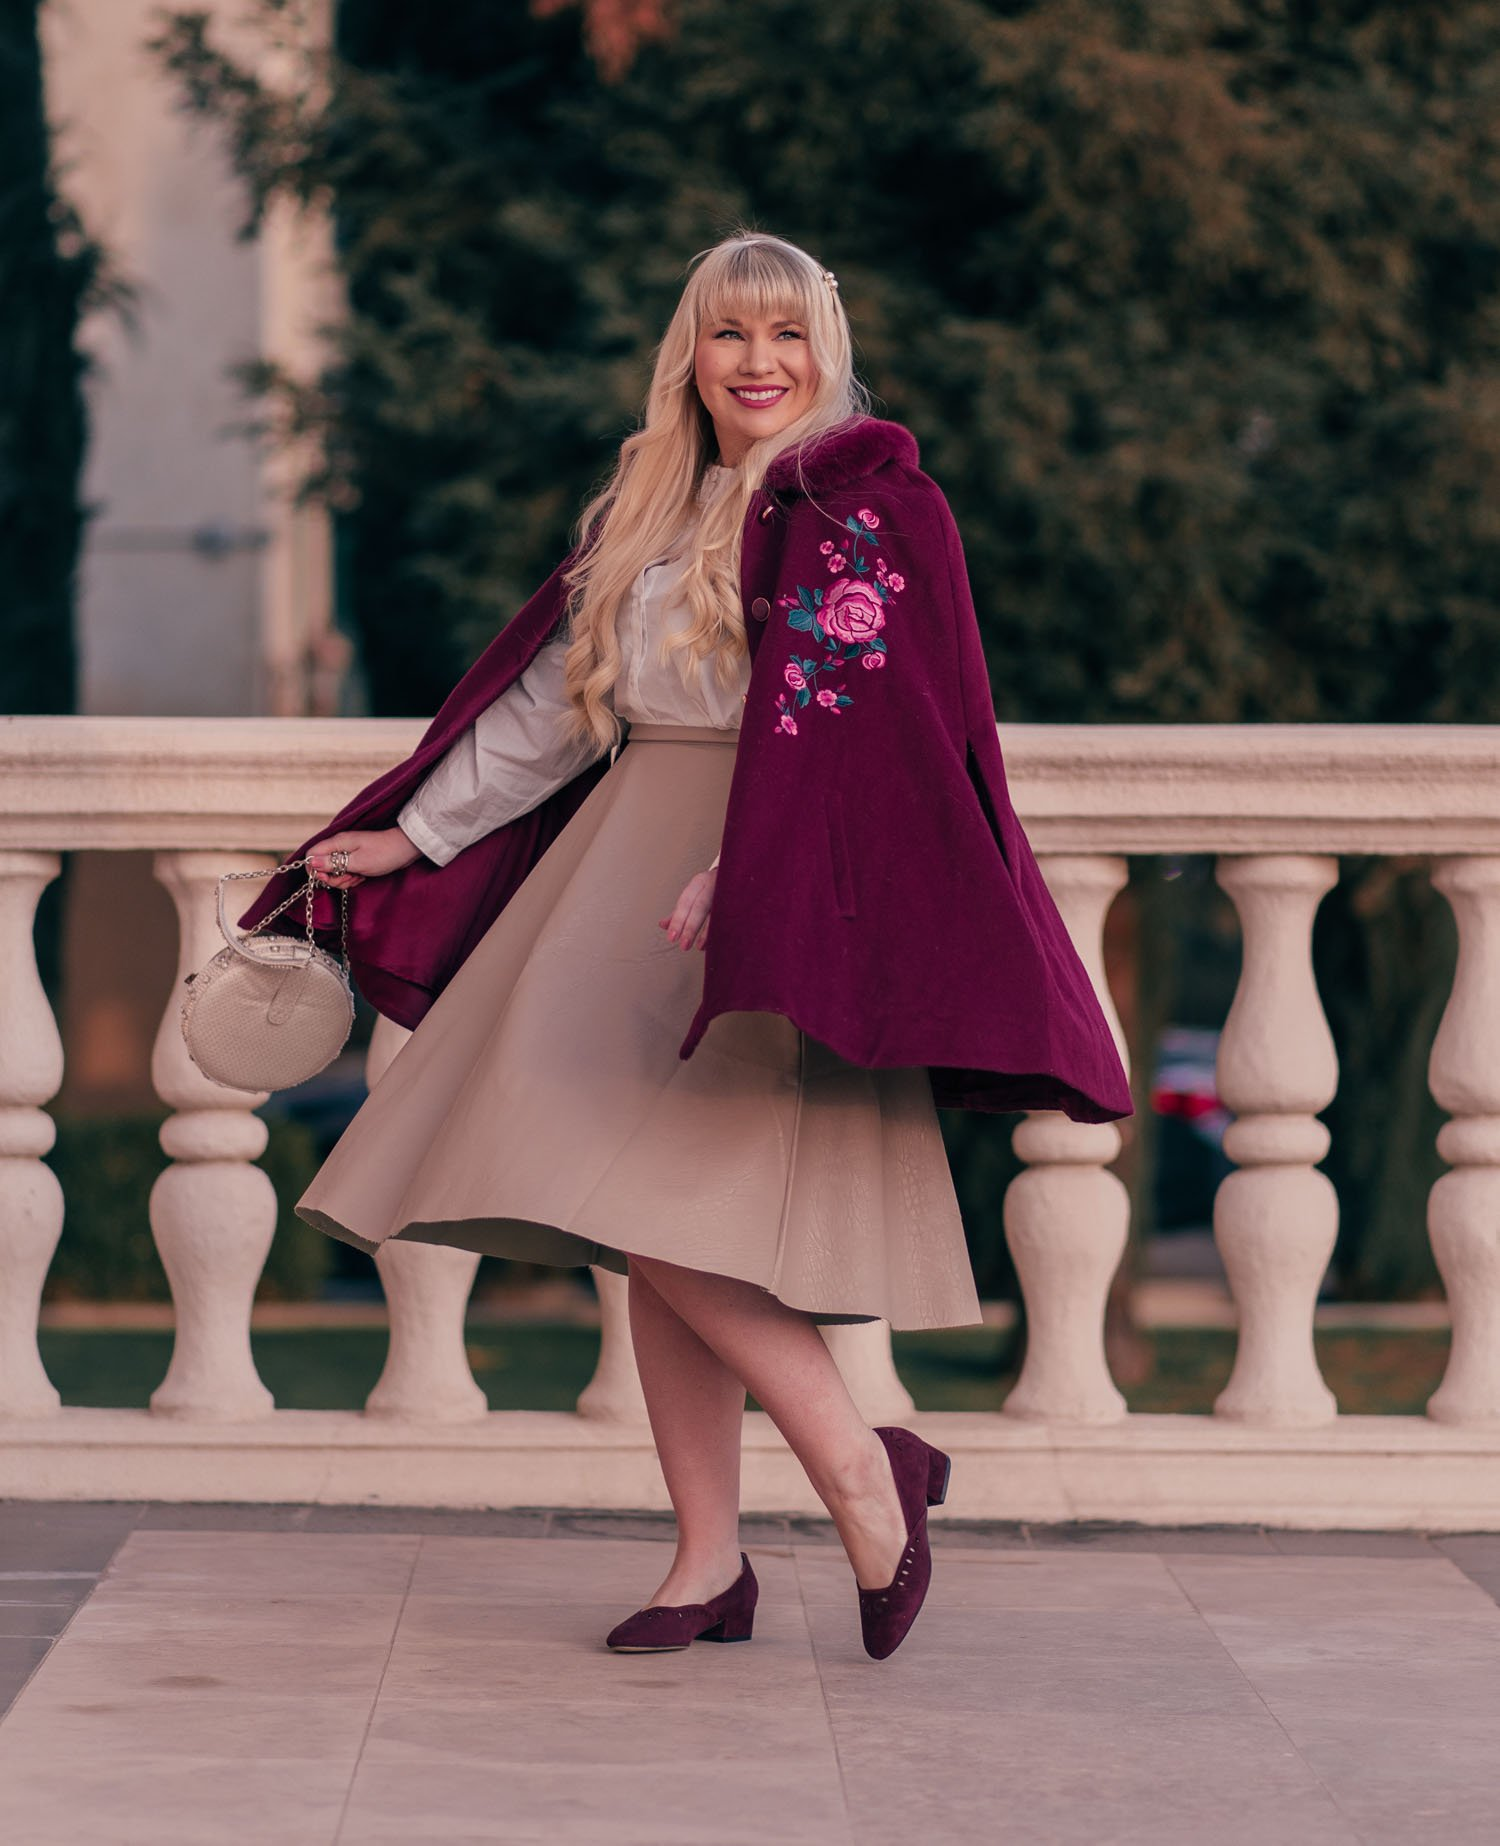 Fashion Blogger Elizabeth Hugen of Lizzie in Lace shares her winter bucket list and a gorgeous red winter cape outfit idea